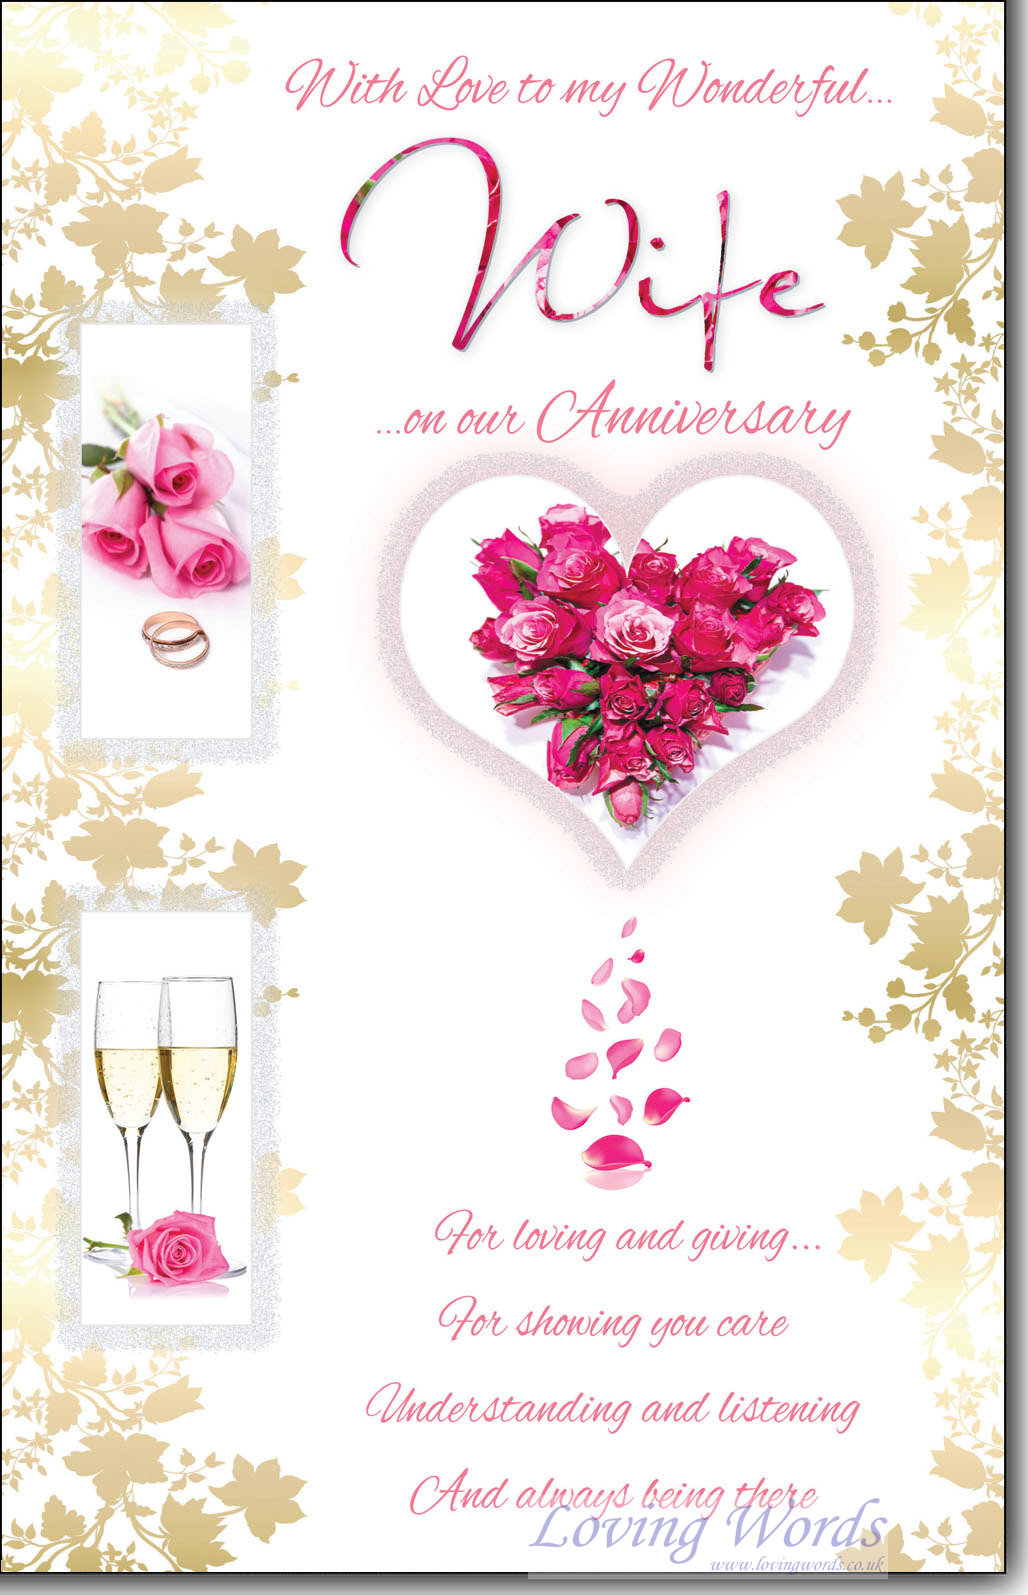 Wife anniversary greeting cards by loving words personalised greeting cards m4hsunfo